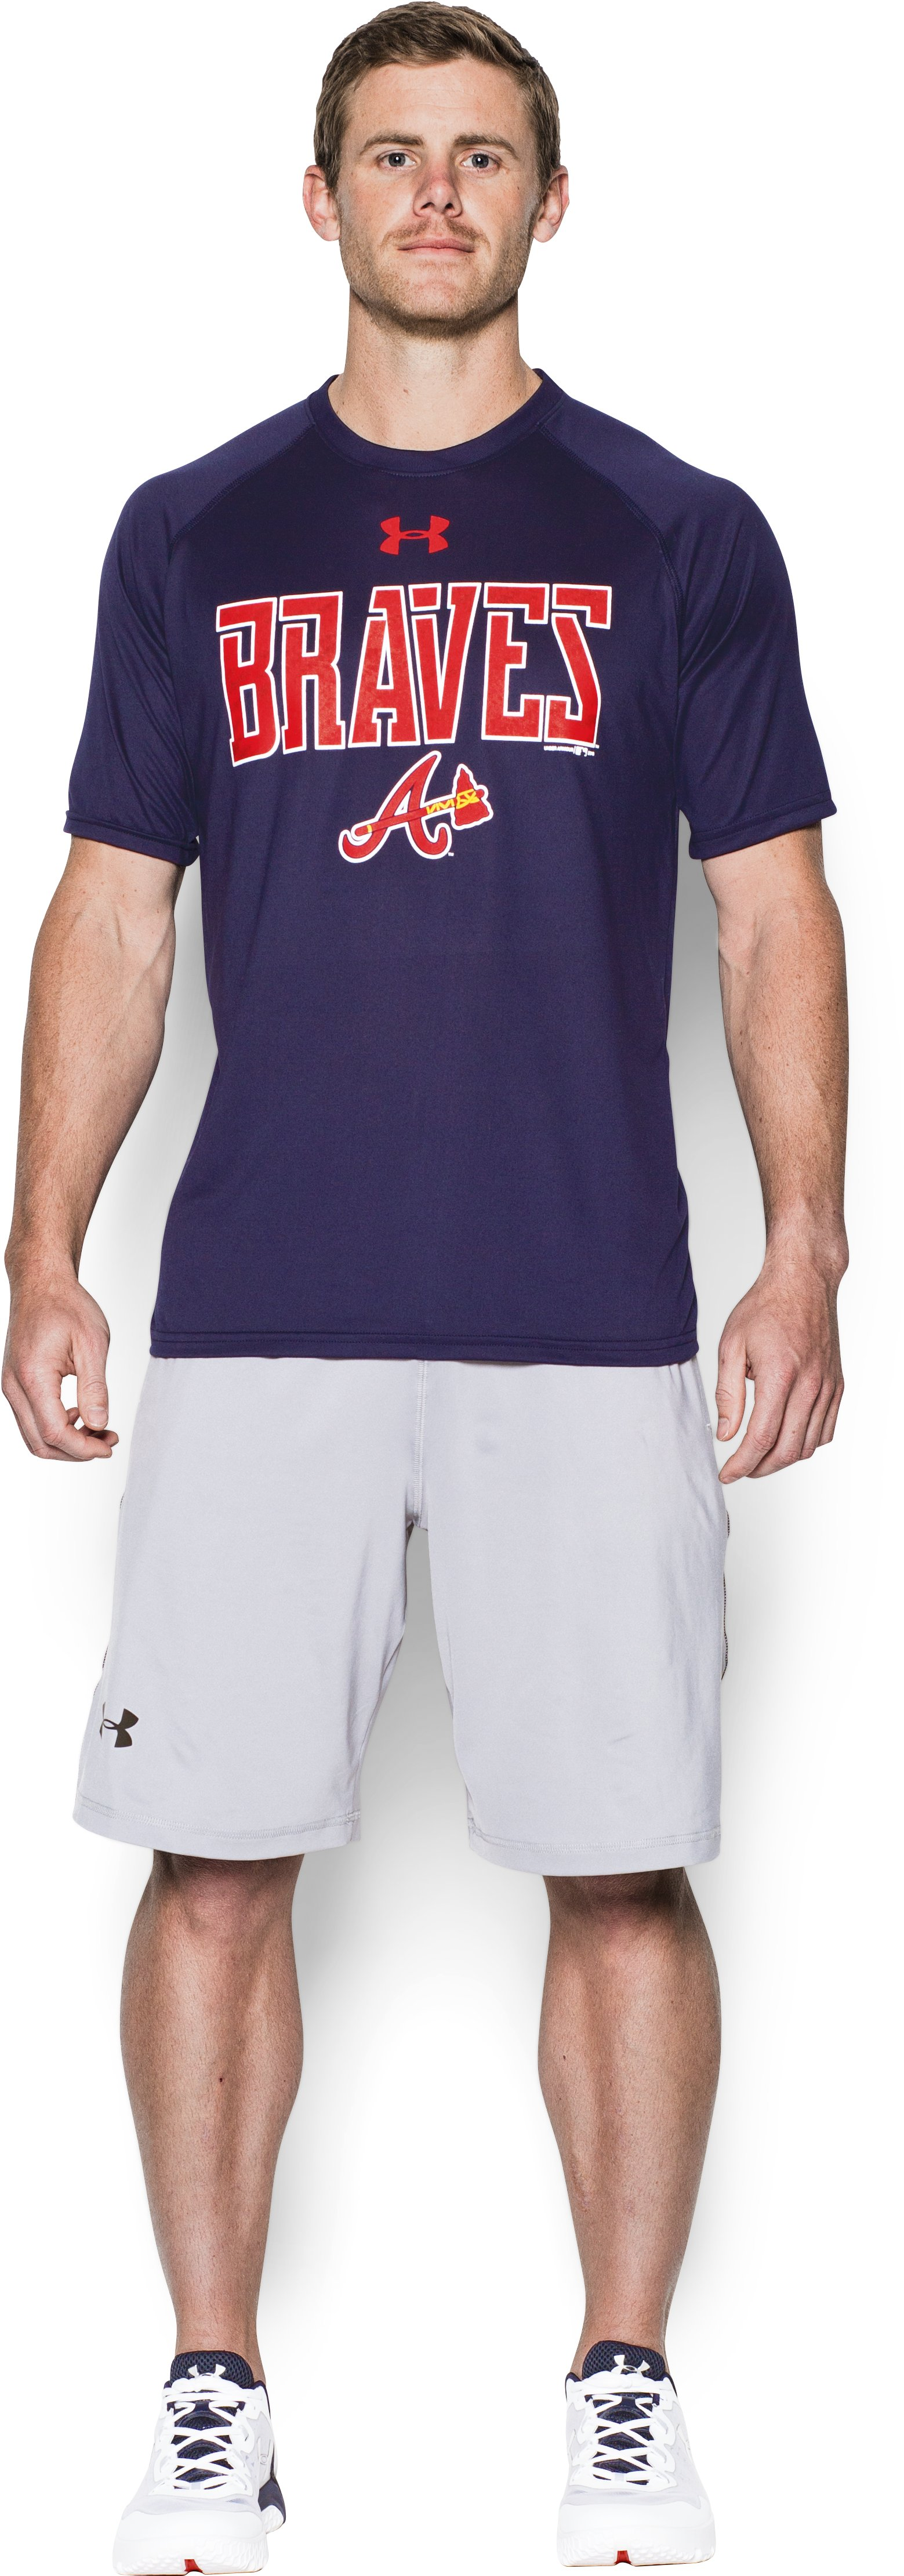 Men's Atlanta Braves Team Tech™ T-Shirt, Midnight Navy, Front